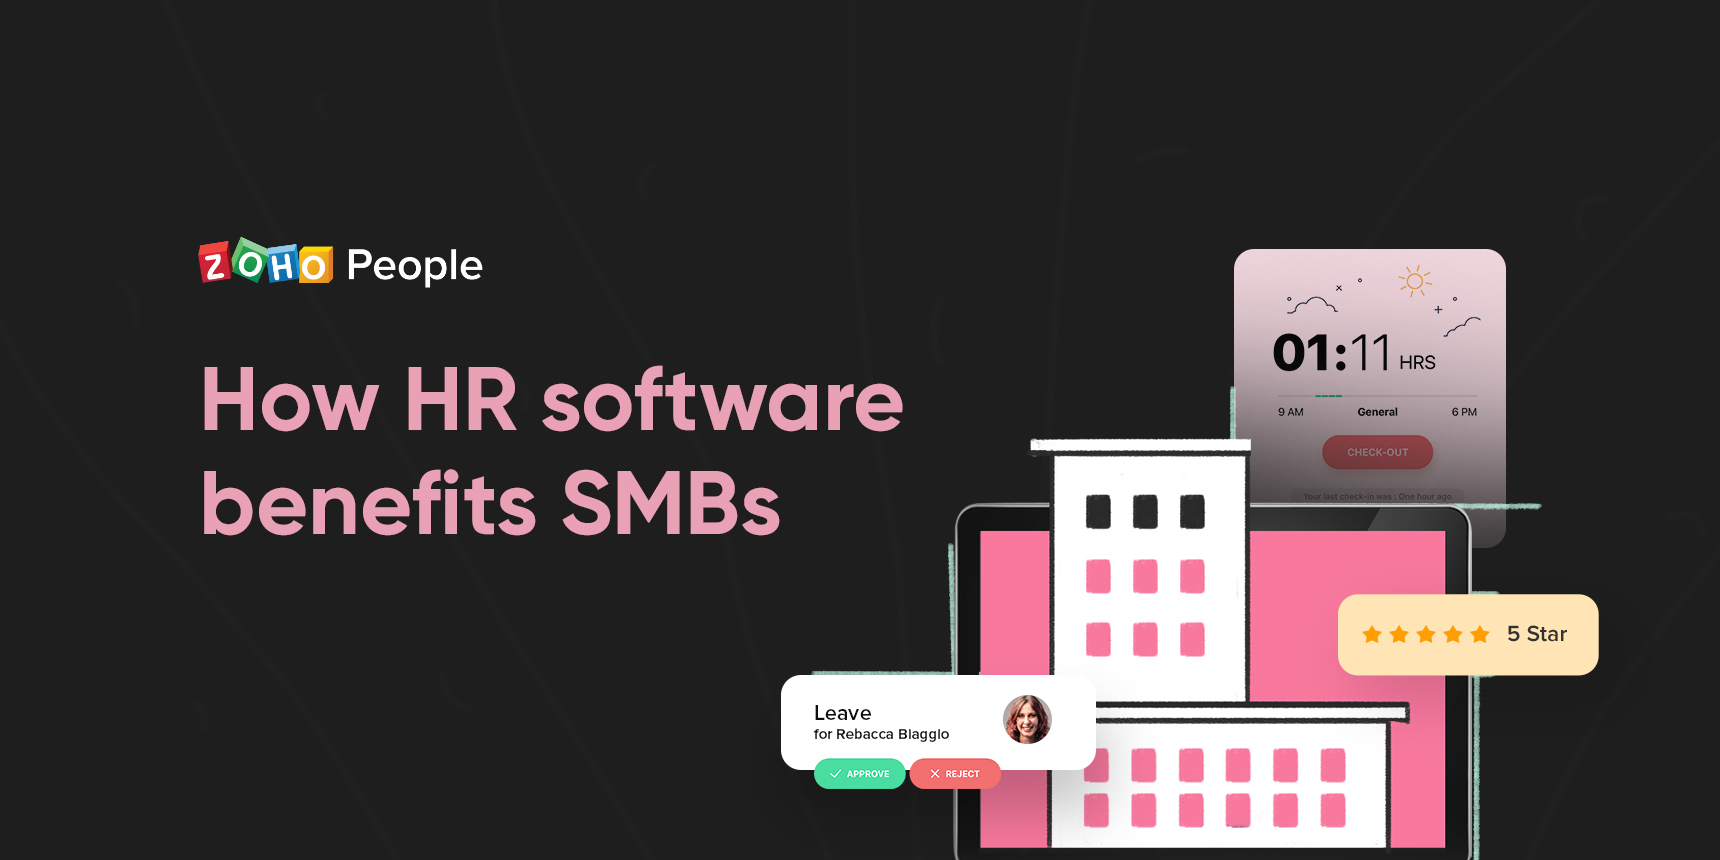 Why HR software is essential for SMBs